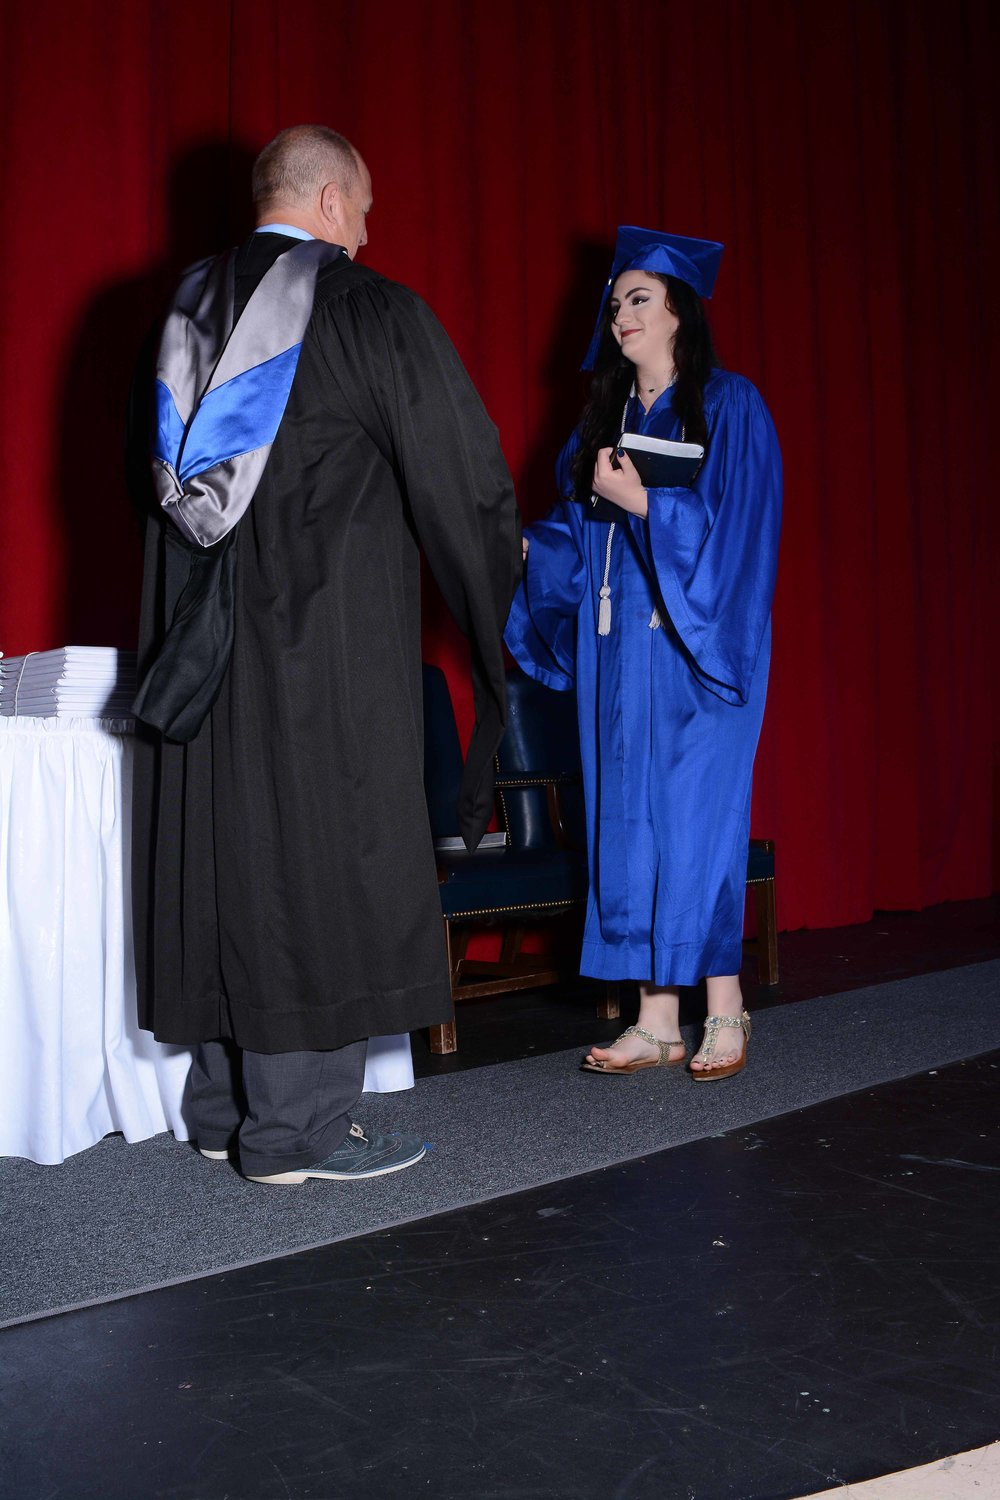 May14 Commencement37.jpg